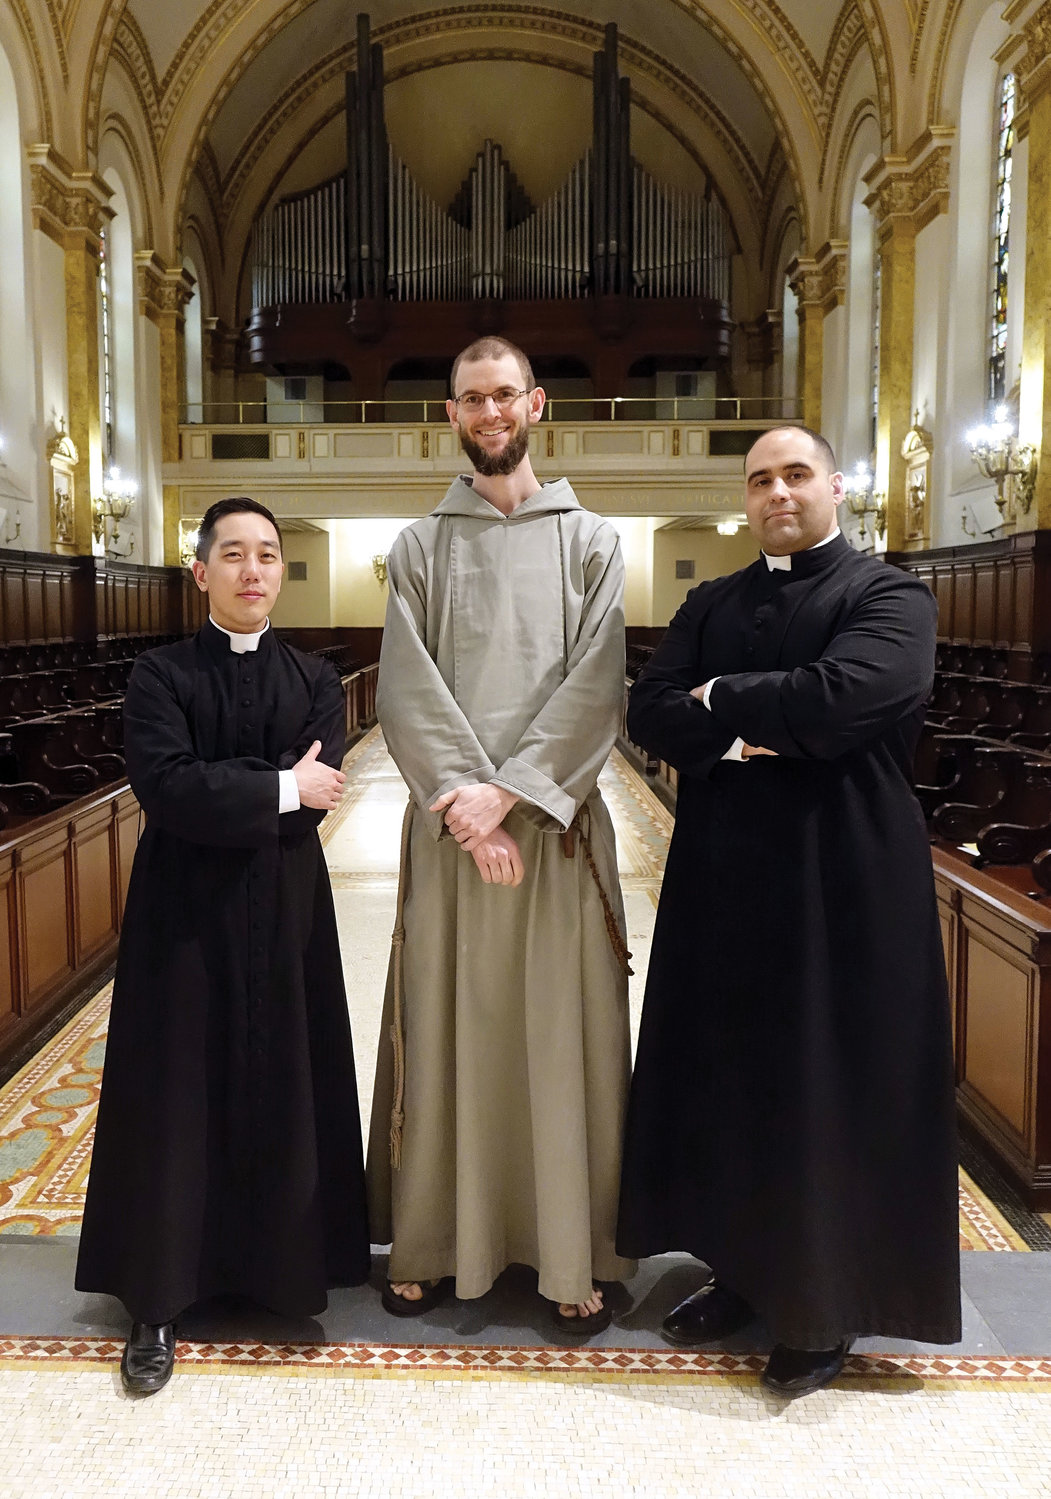 Three graduates of St. Joseph's Seminary, Dunwoodie, are among the six men Cardinal Dolan will ordain to the priesthood this Saturday, May 25, at St. Patrick's Cathedral. In the seminary chapel, from left are Father Roger Kwan, Father Gabriel Monahan, C.F.R., and Father John J. Figueroa.